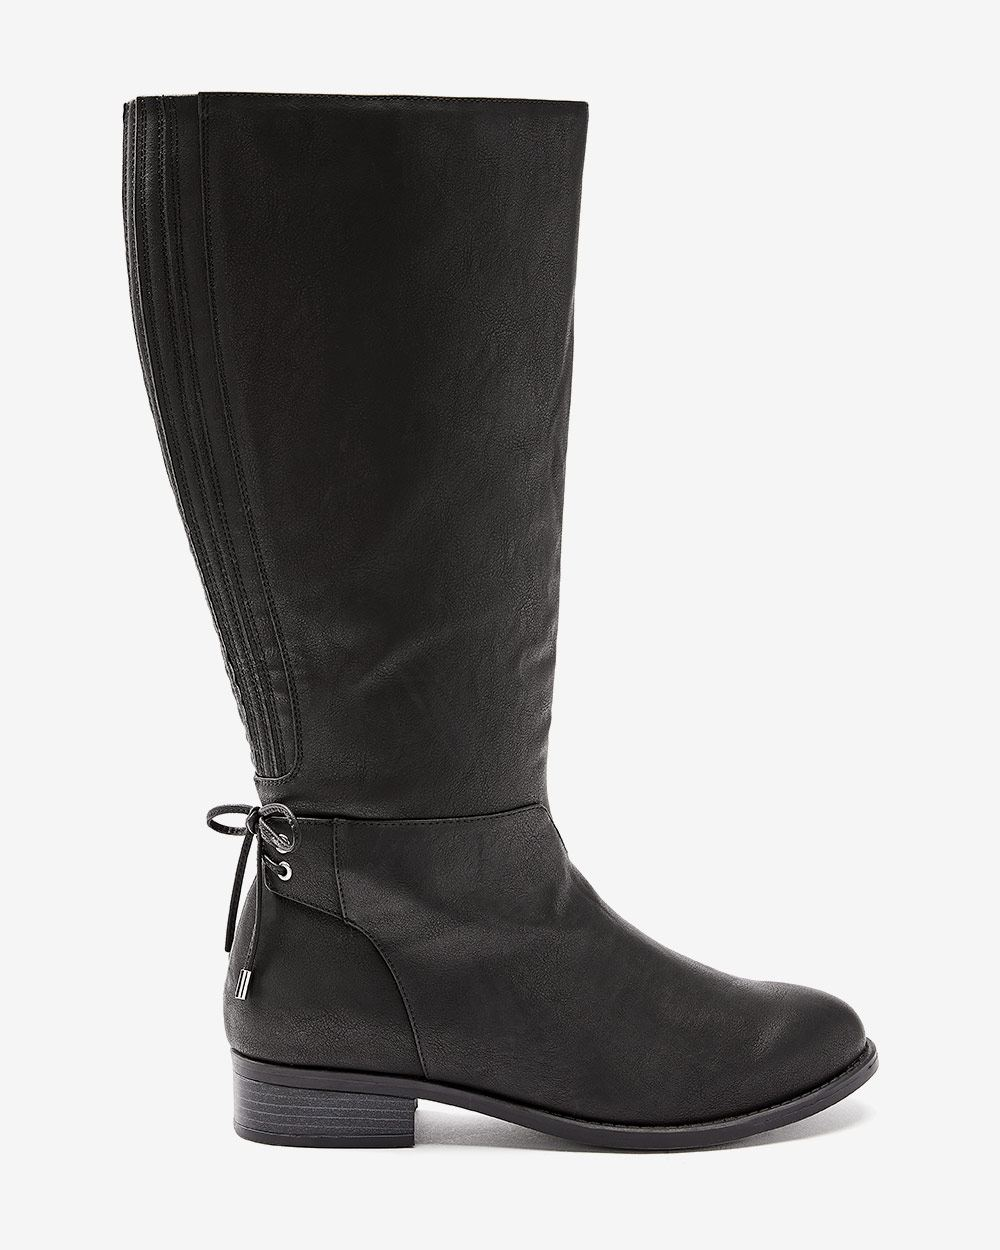 Tie Back Tall Boot - Addition Elle ($119 CAD)